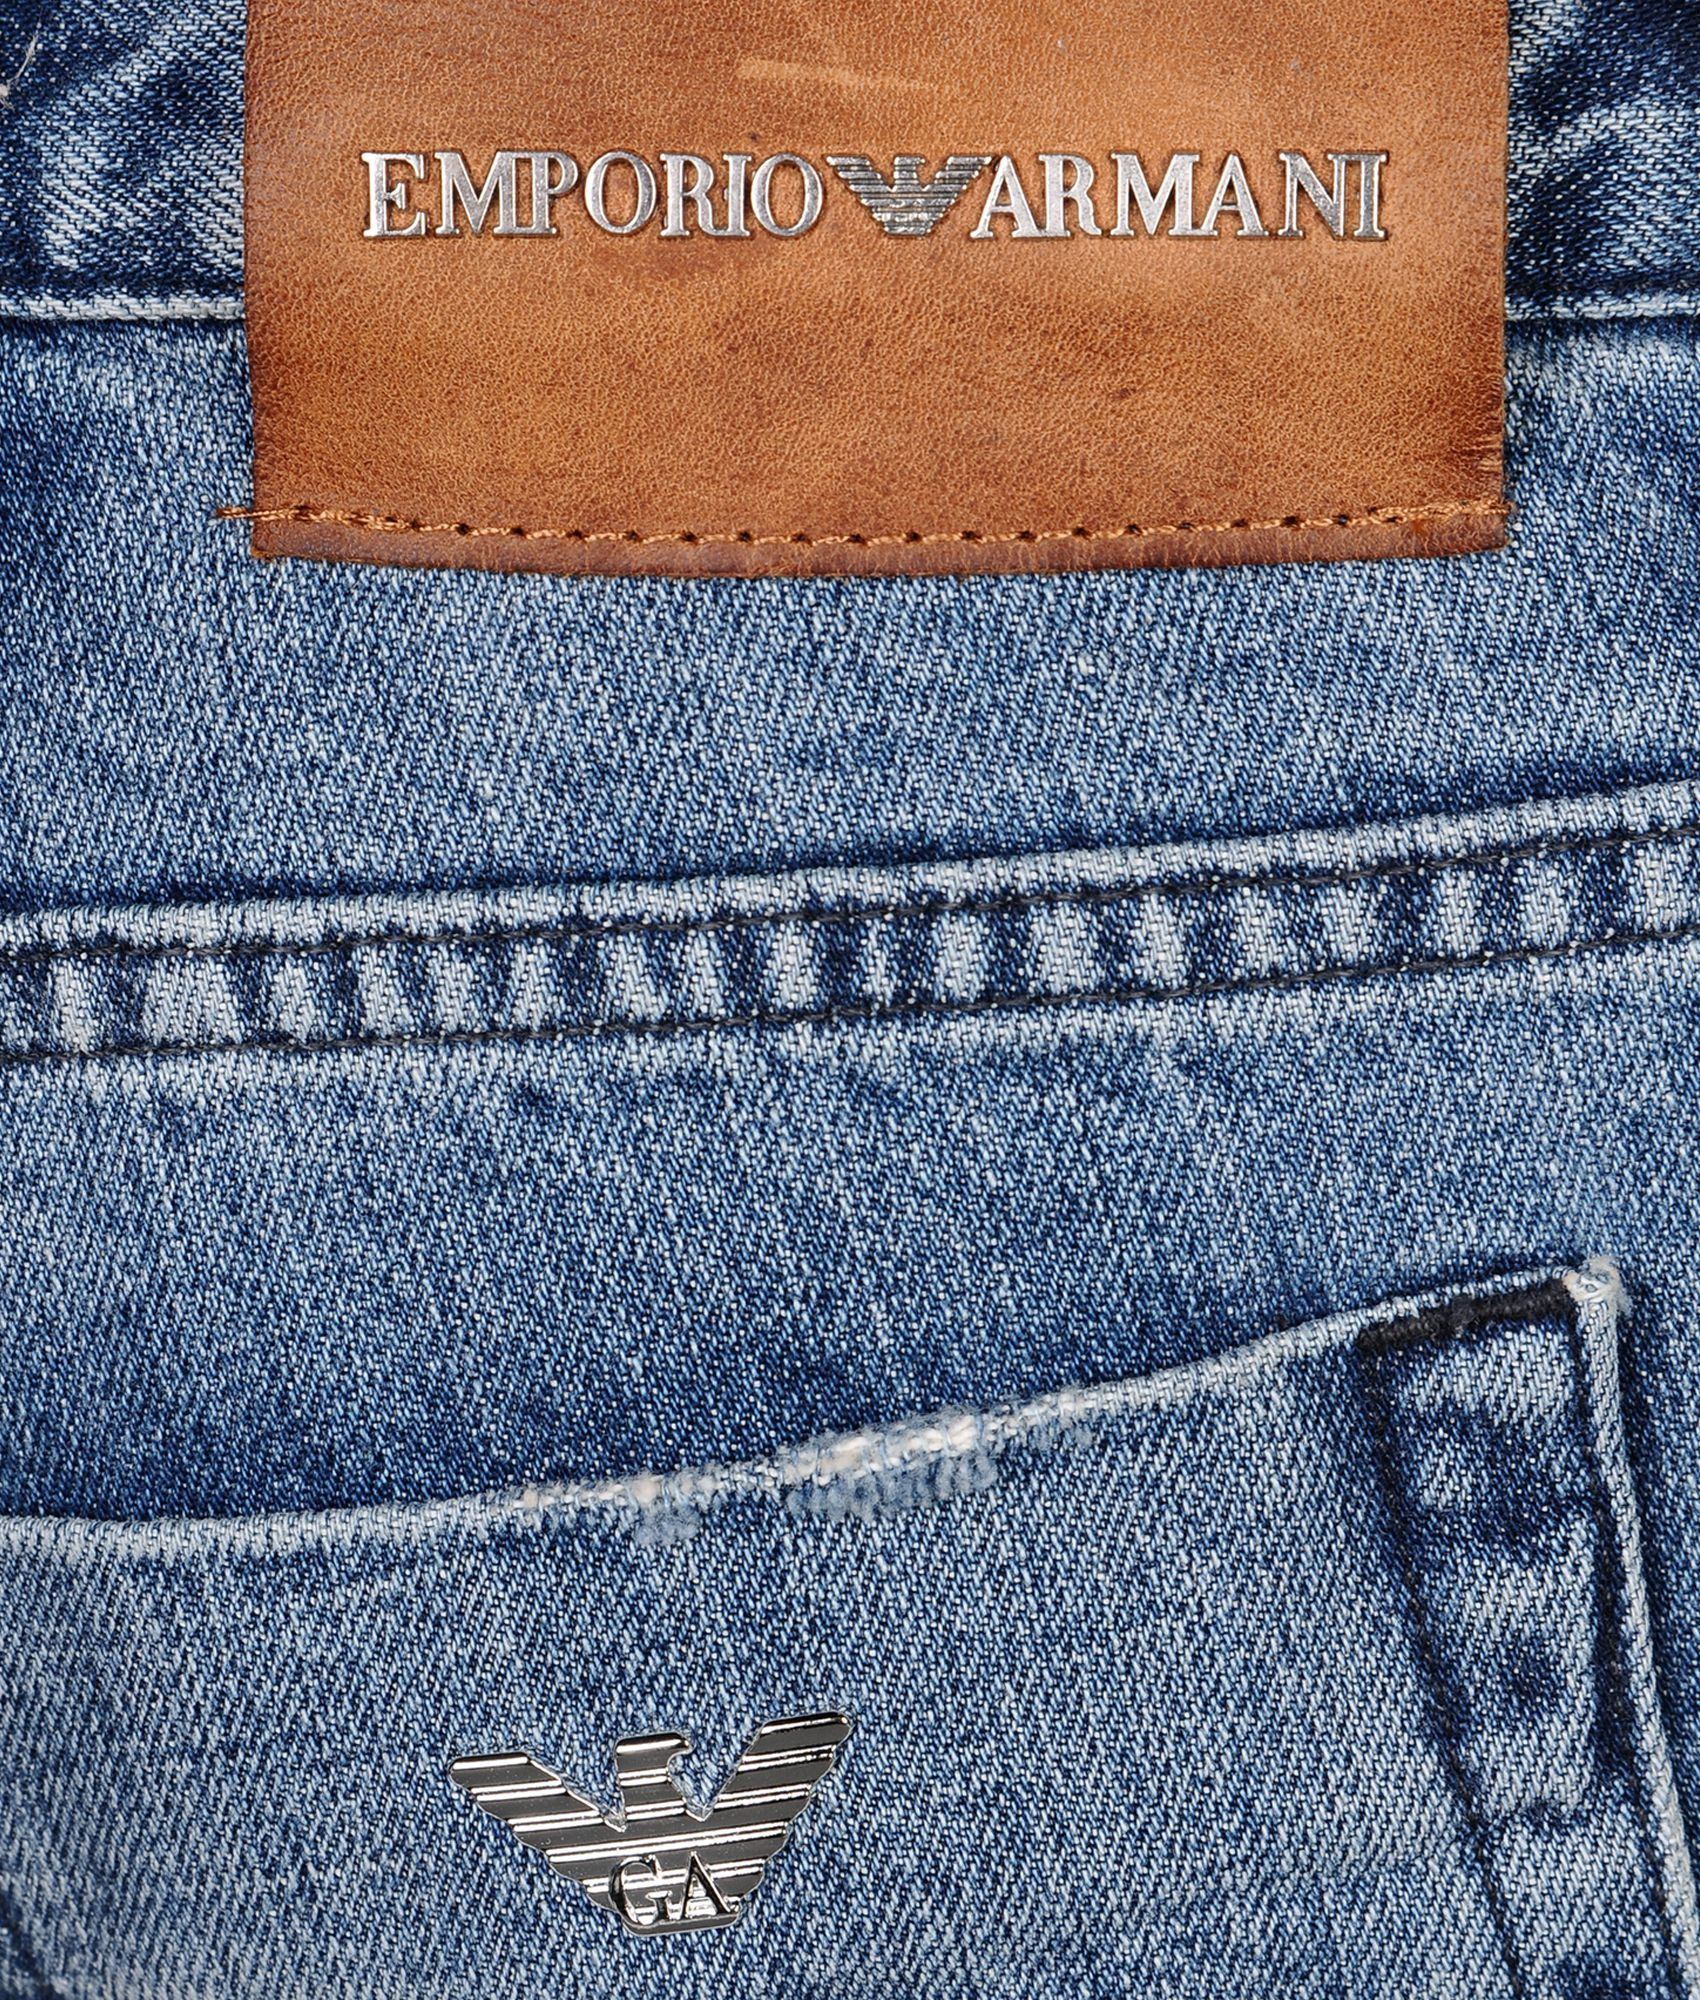 Emporio Armani Jeans at The Mailbox